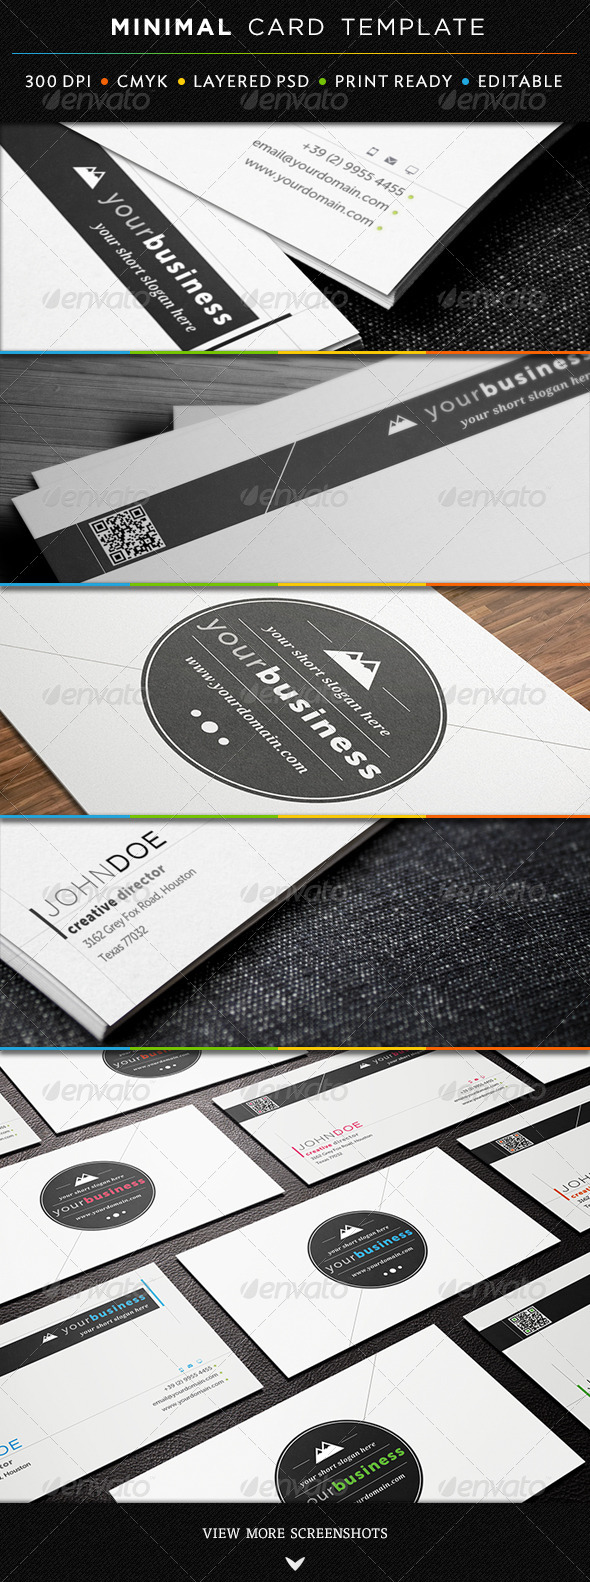 Minimal Business Card Template - Creative Business Cards